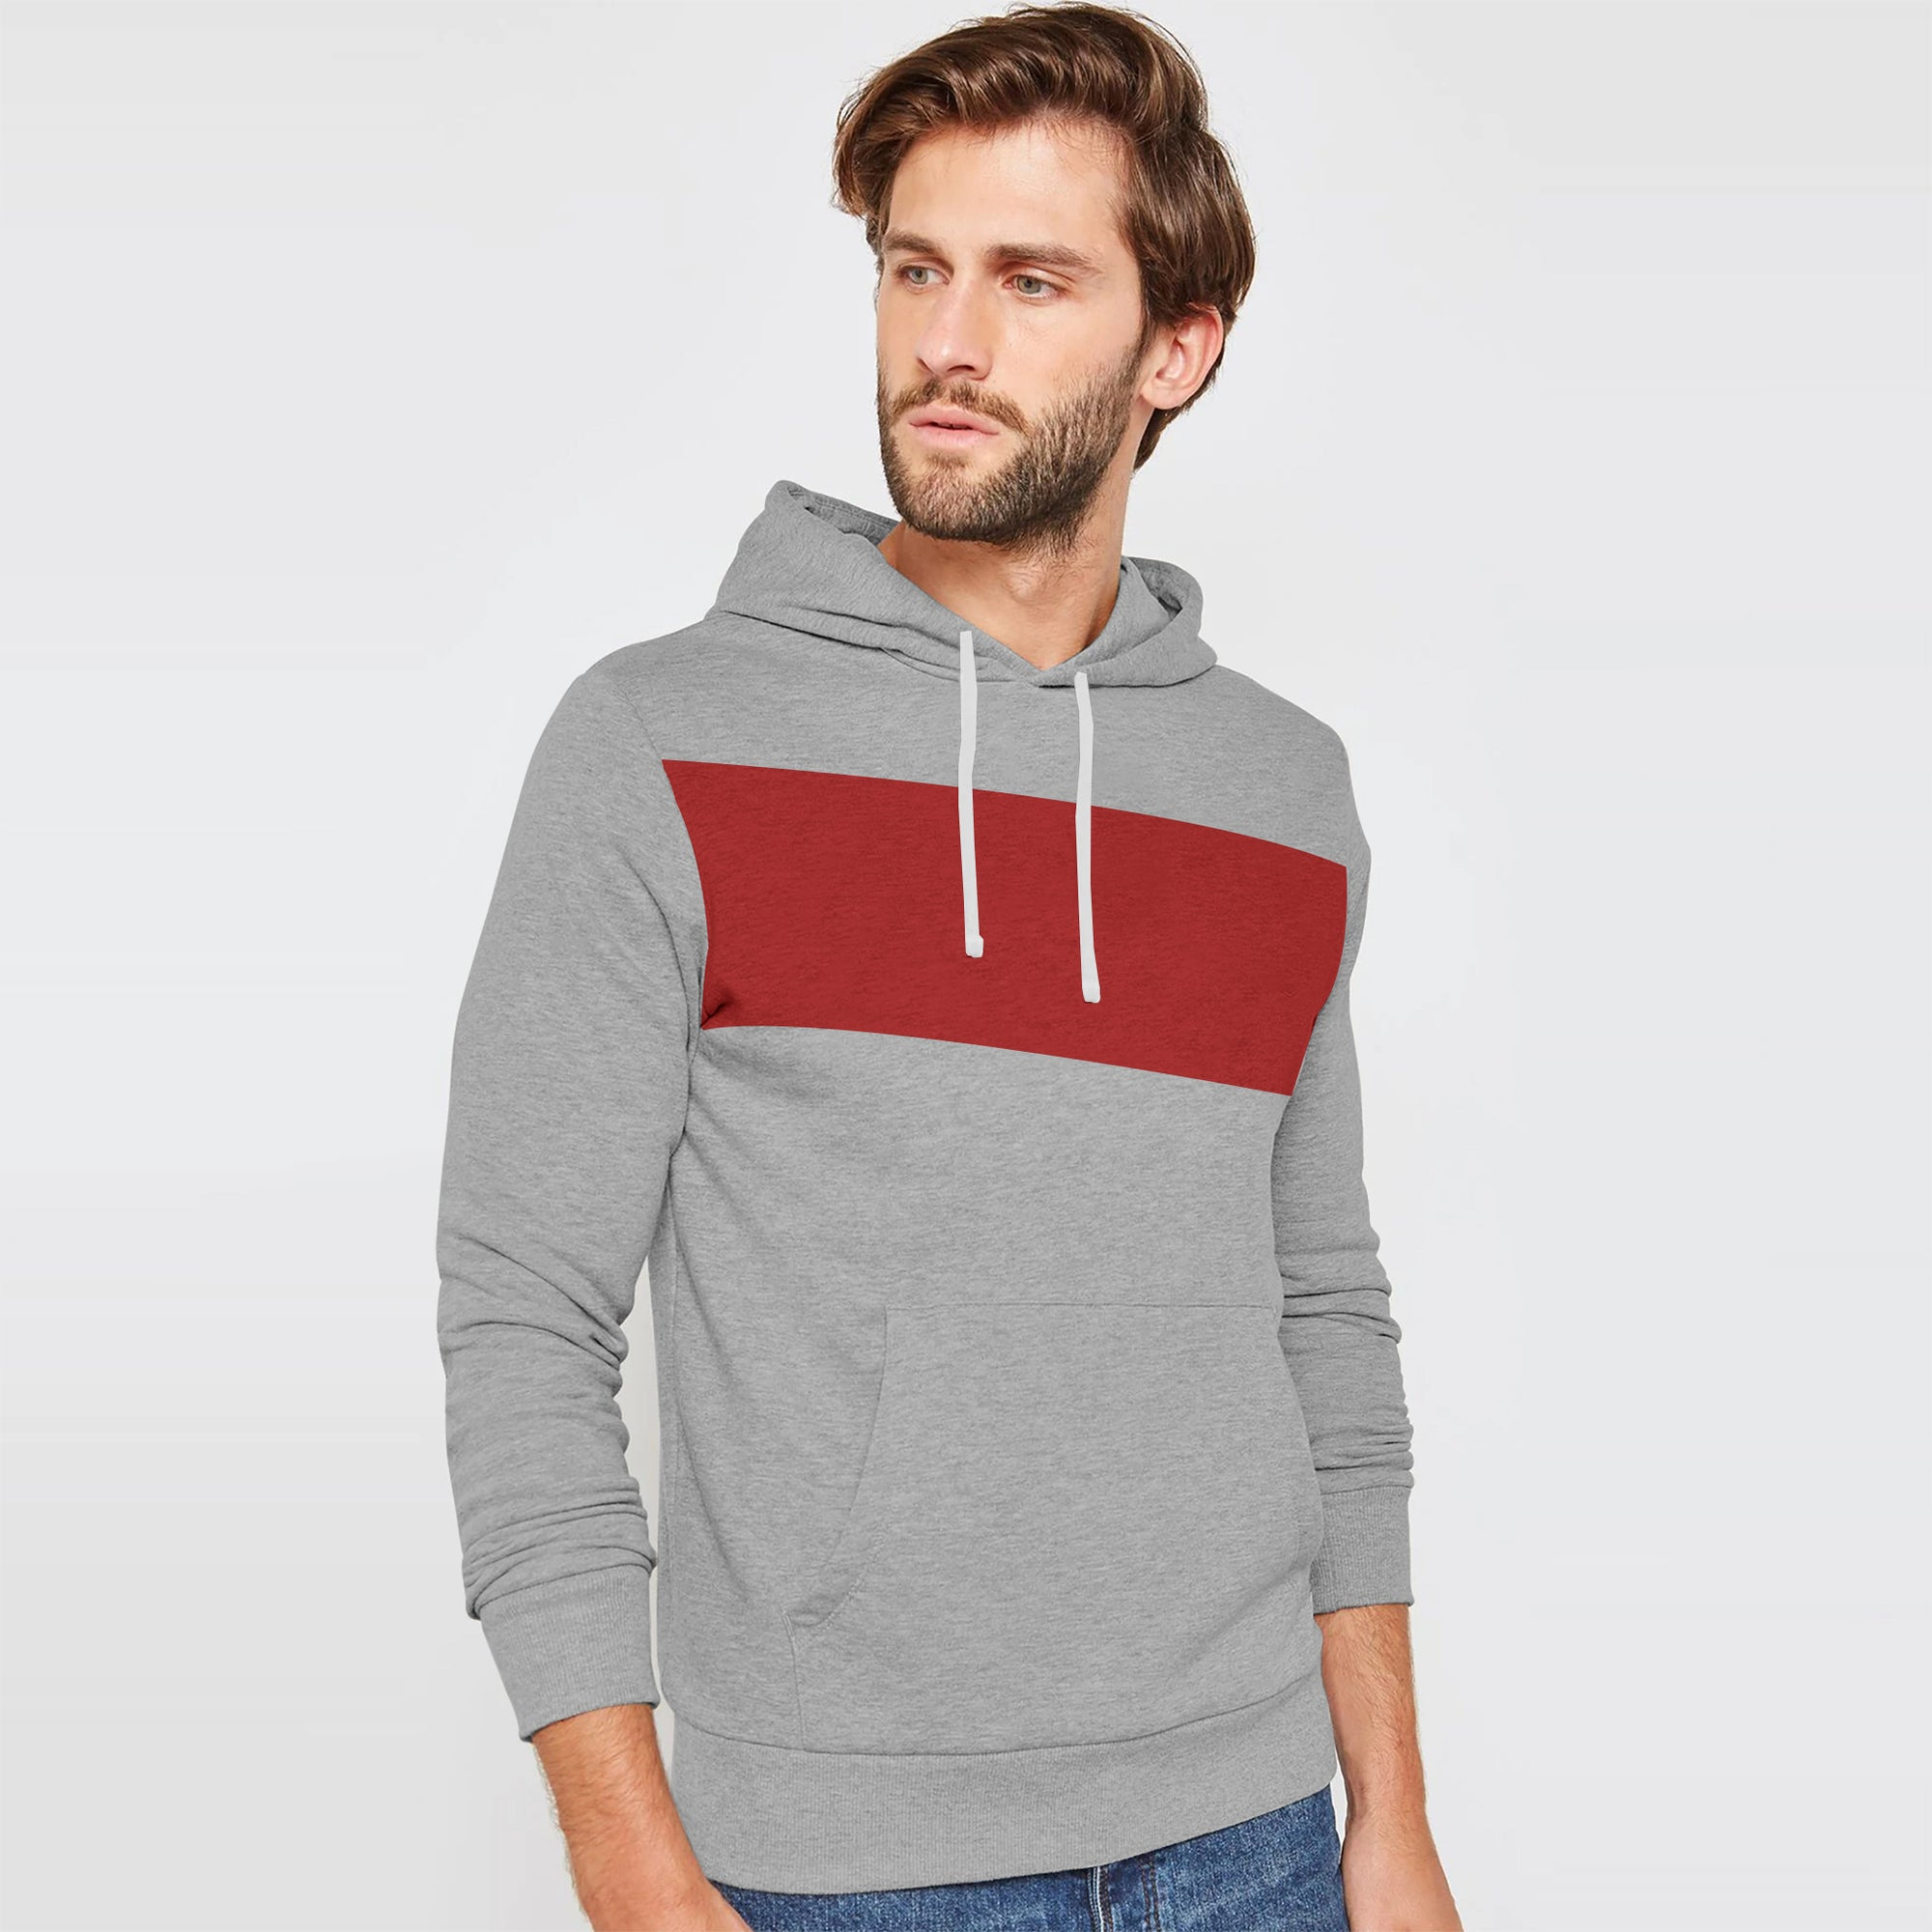 New Stylish Fleece Pullover Hoodie For Men-Grey Melange With Carrot Red Red Panel-SP1660